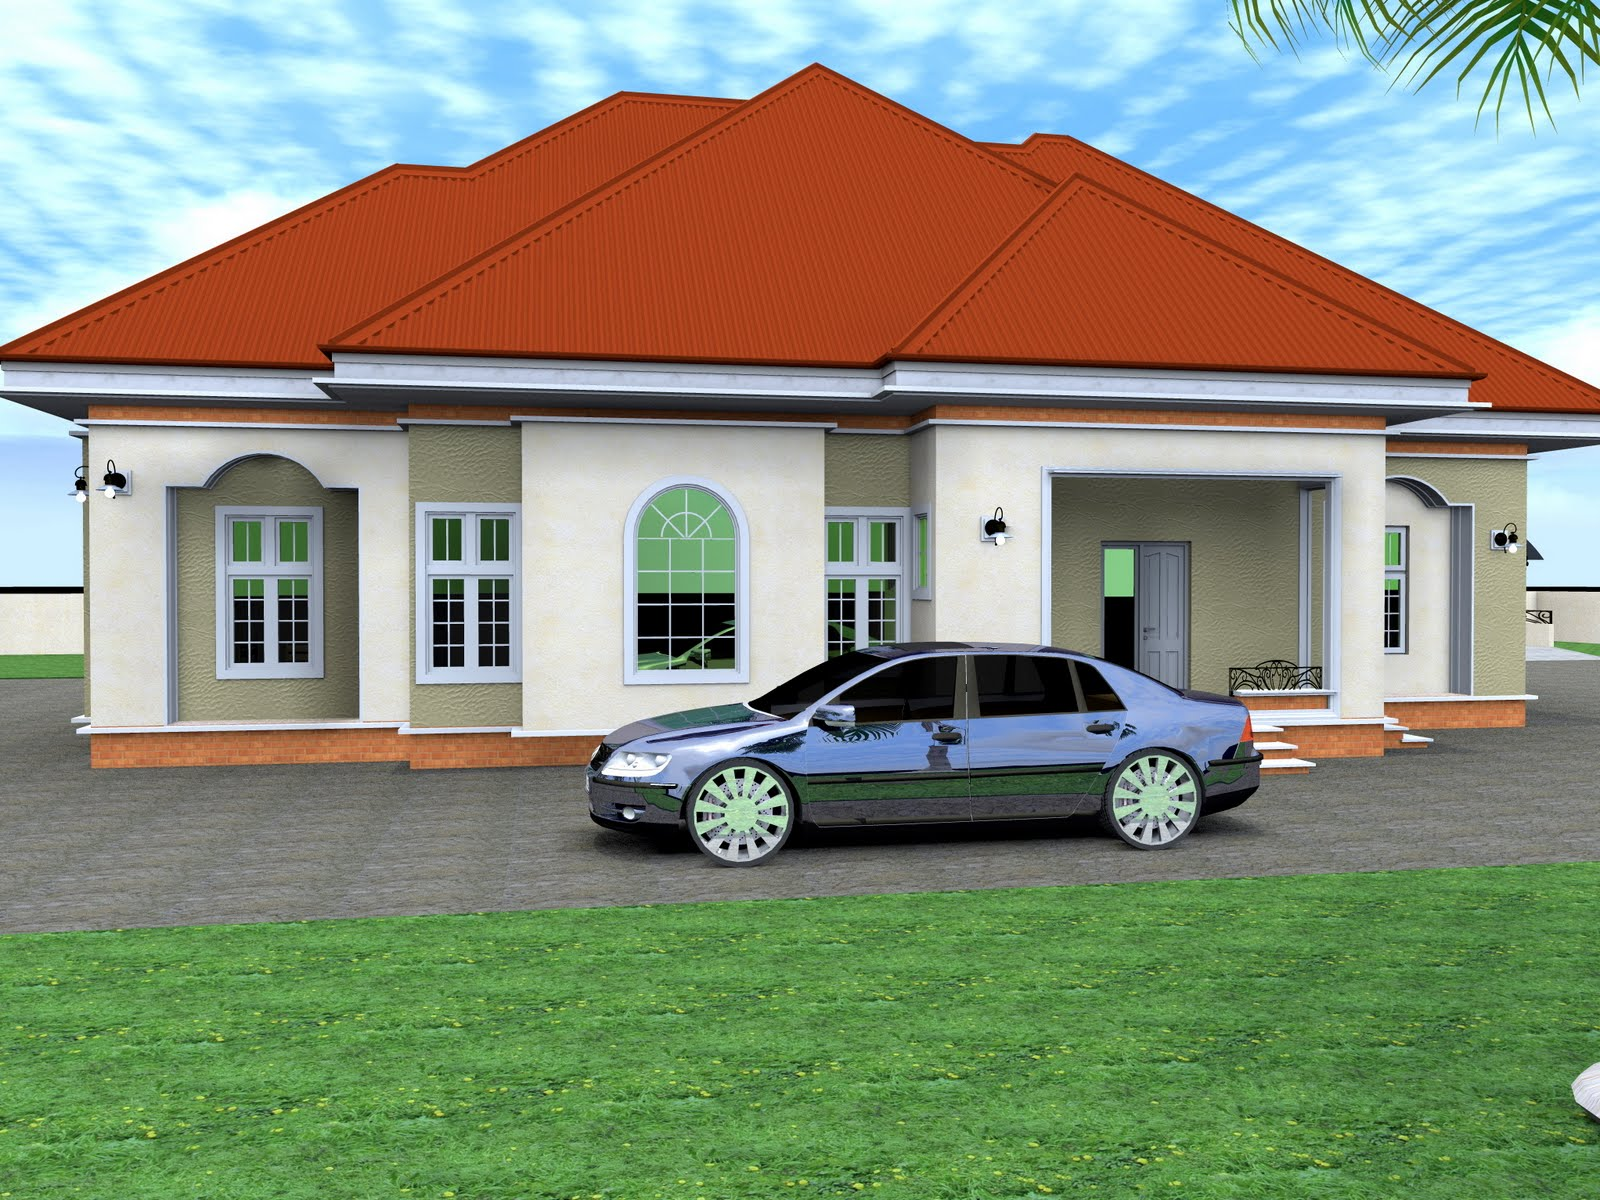 Residential Homes and Public Designs: 3 Bedroom Bungalow